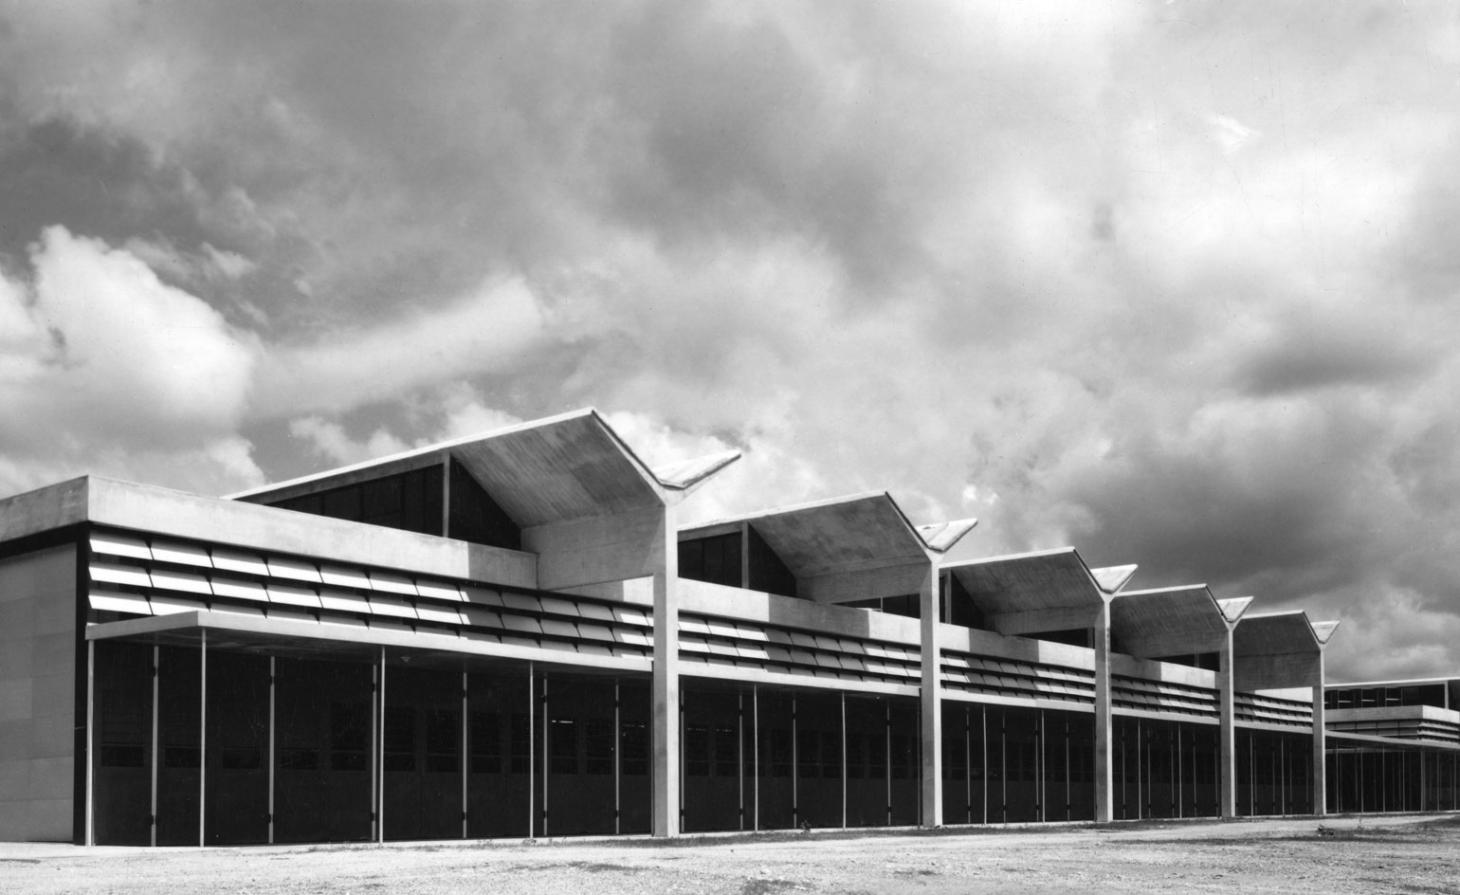 Building in Ghana in black and white against the sky